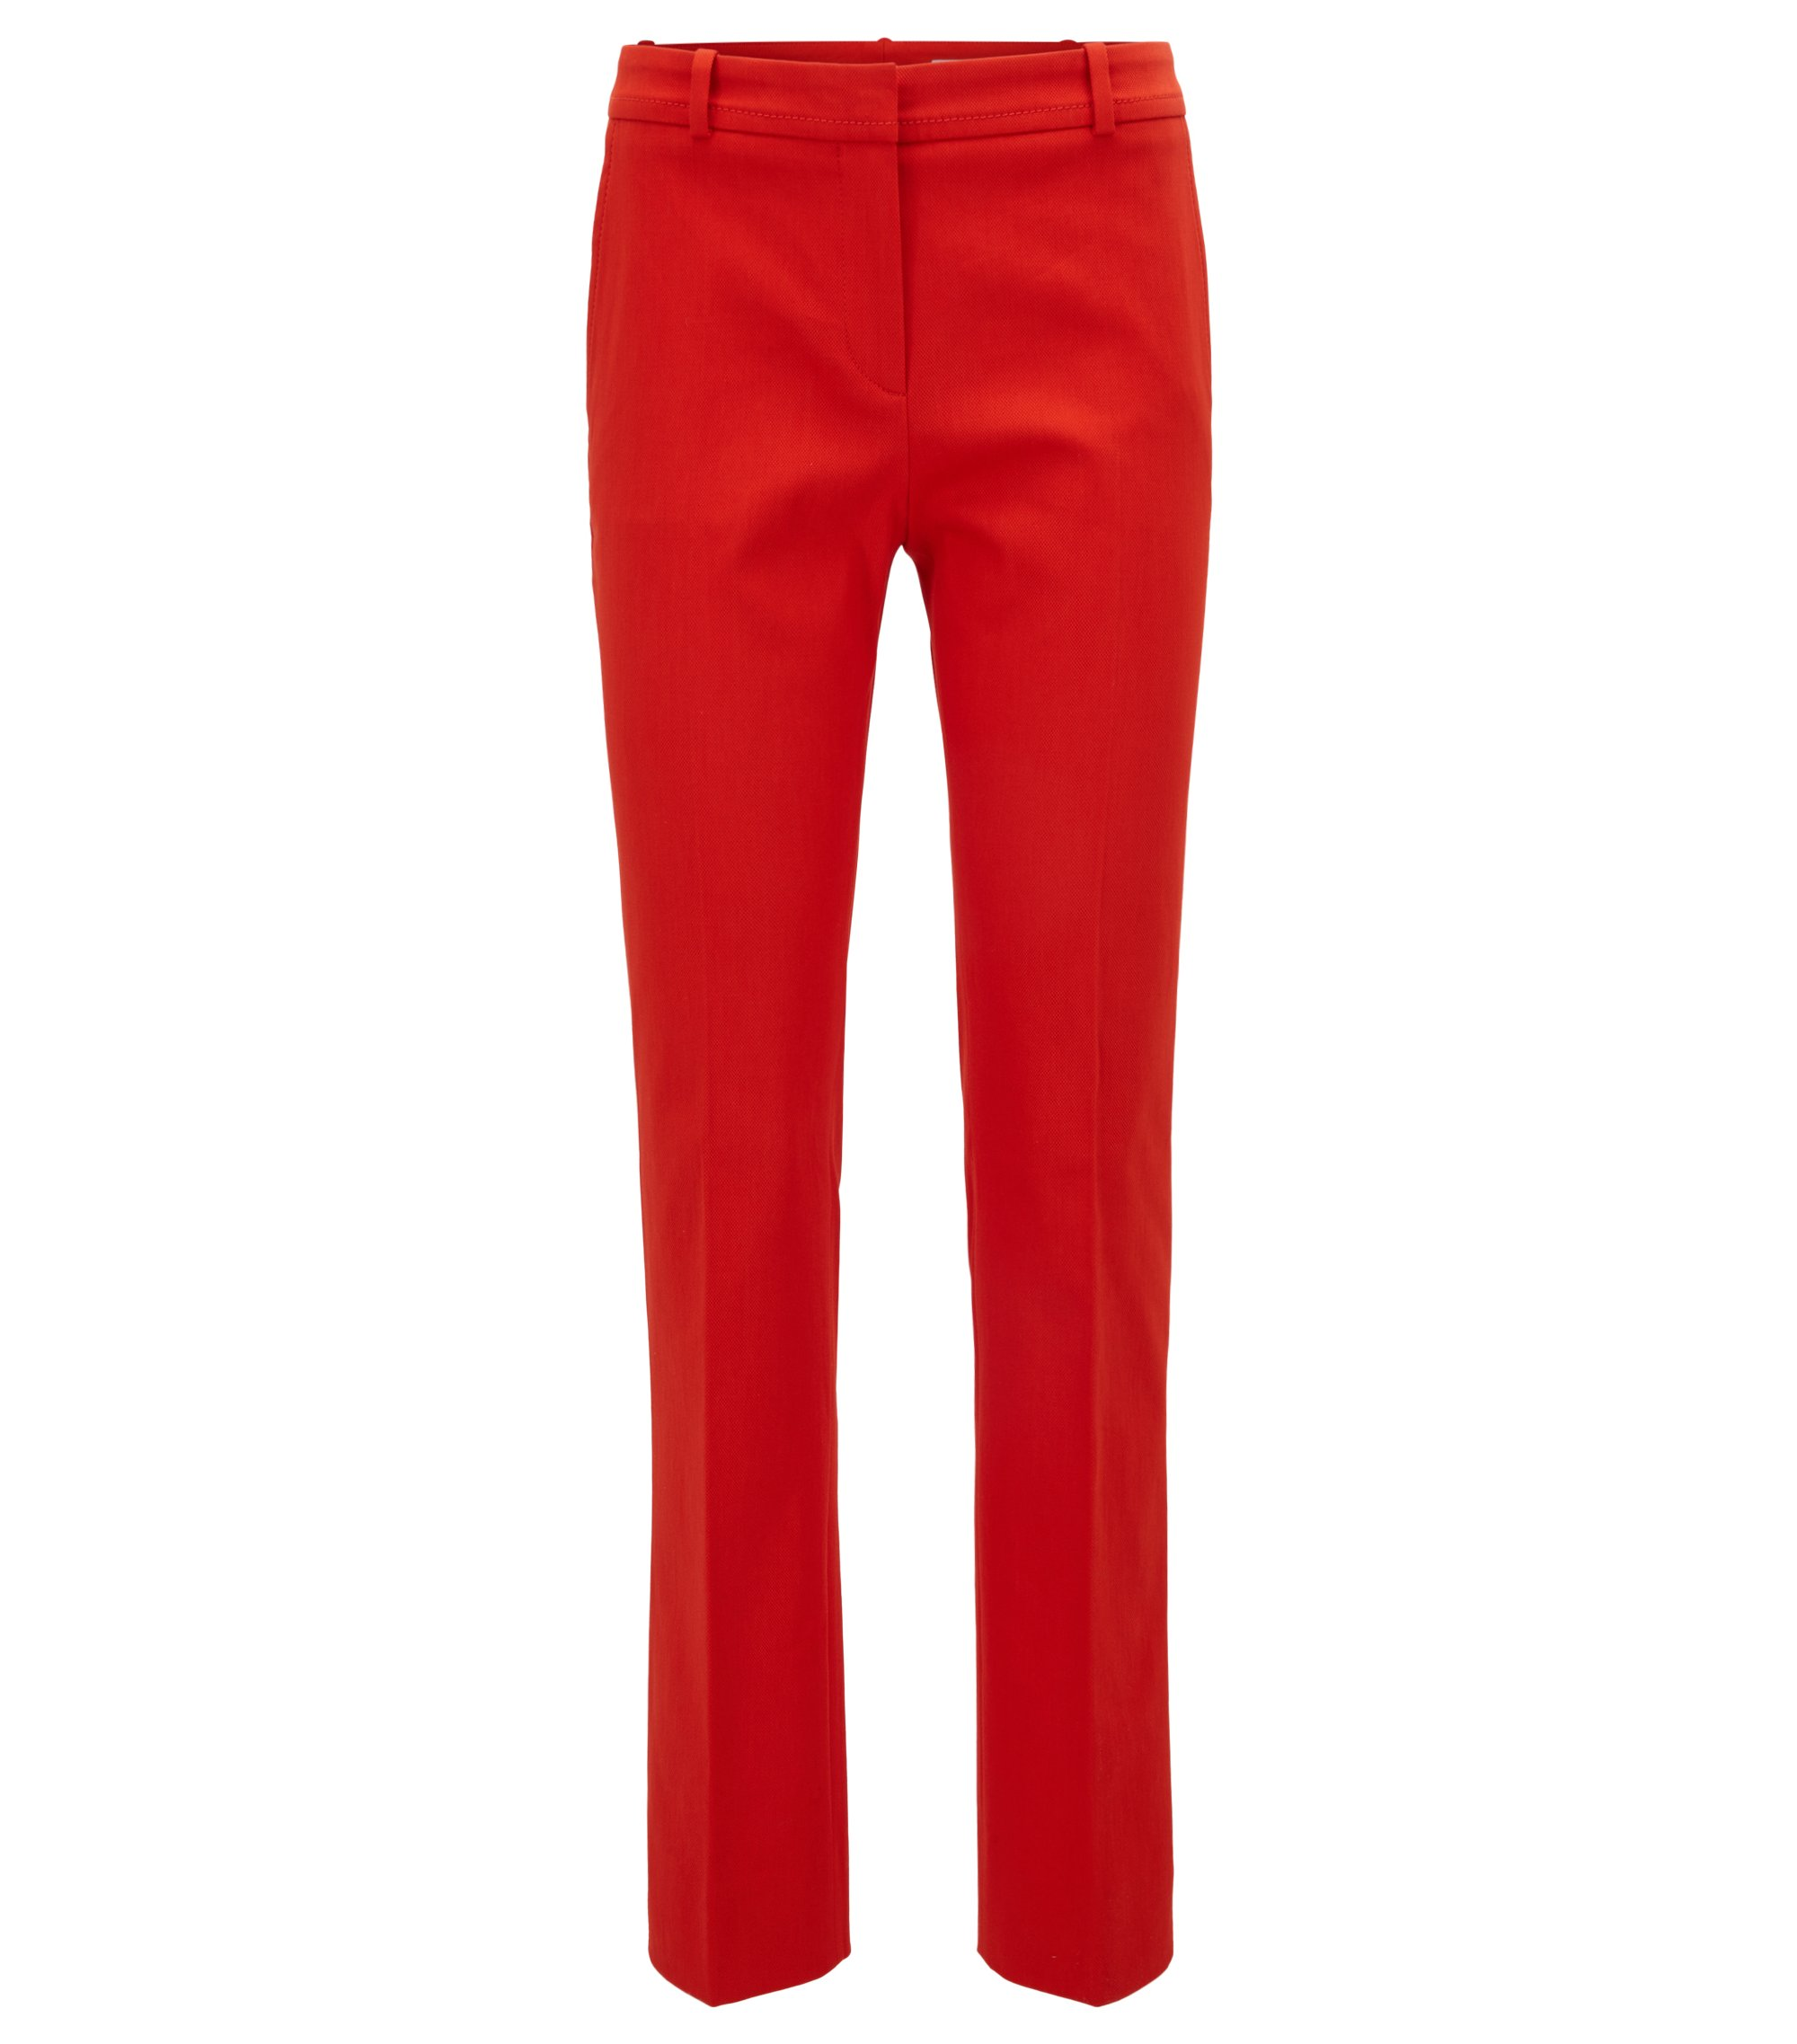 Pantalon Regular Fit raccourci en coton stretch, Rouge